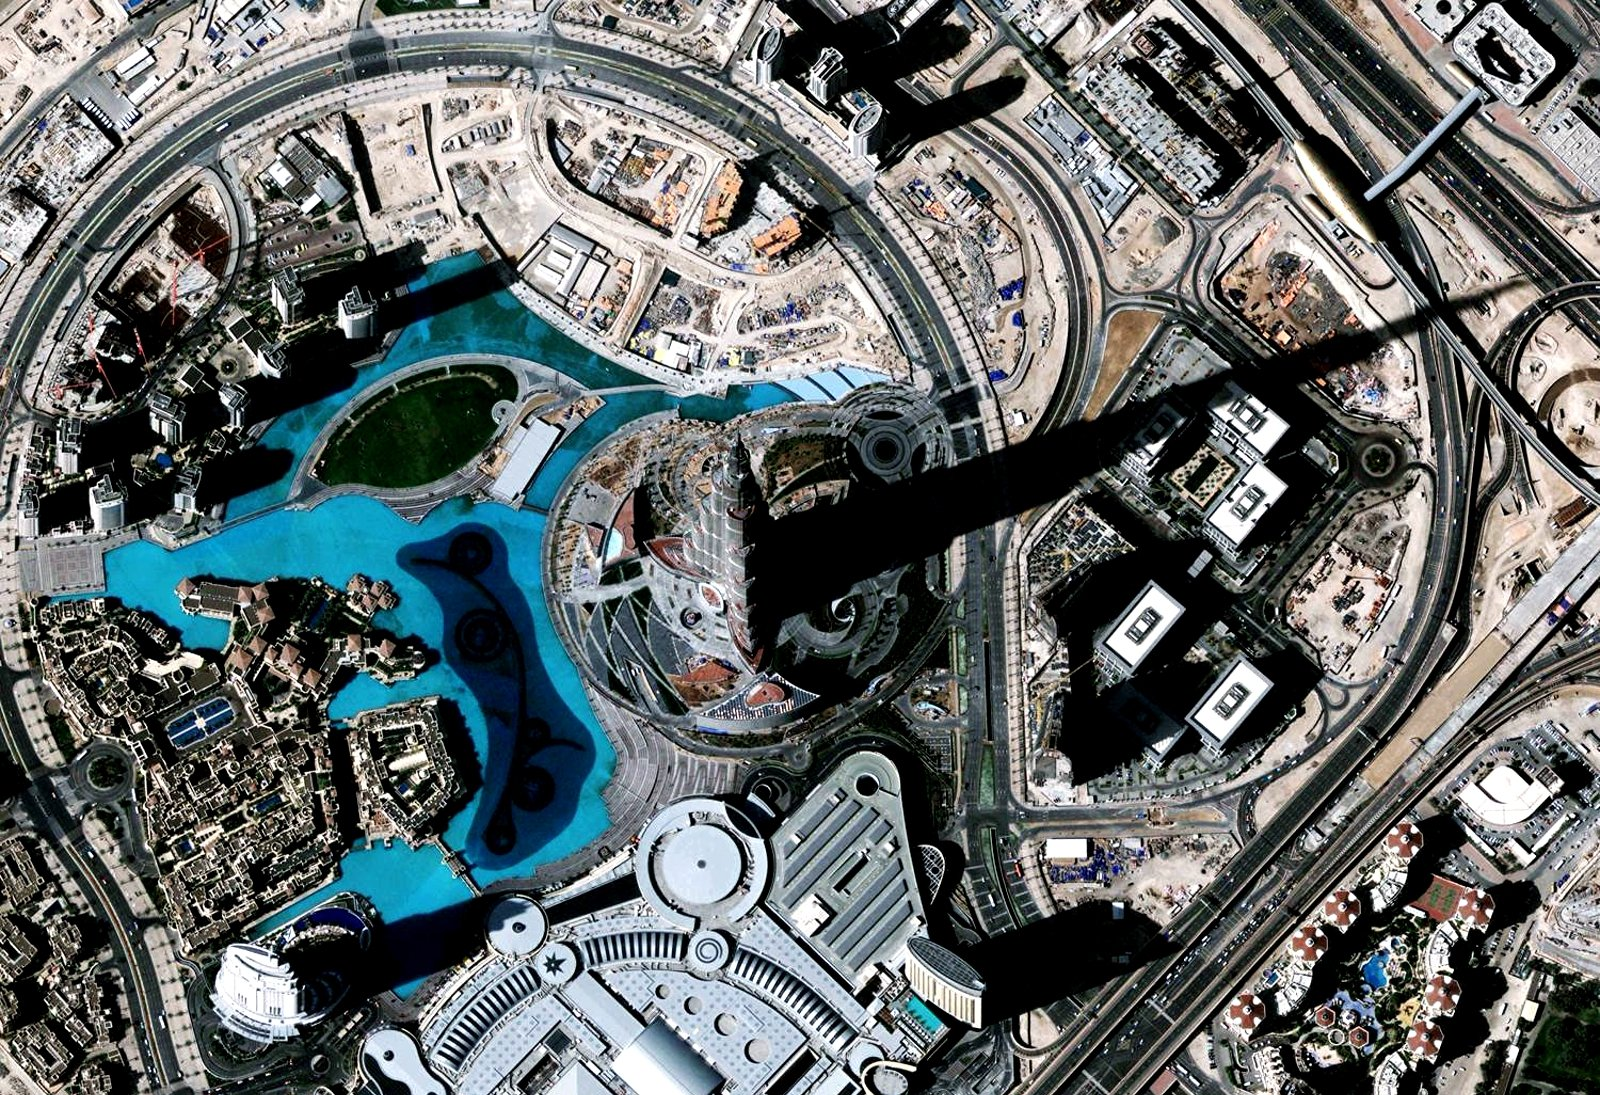 How to see the 8 kilometer shadow of Burj Khalifa in Dubai